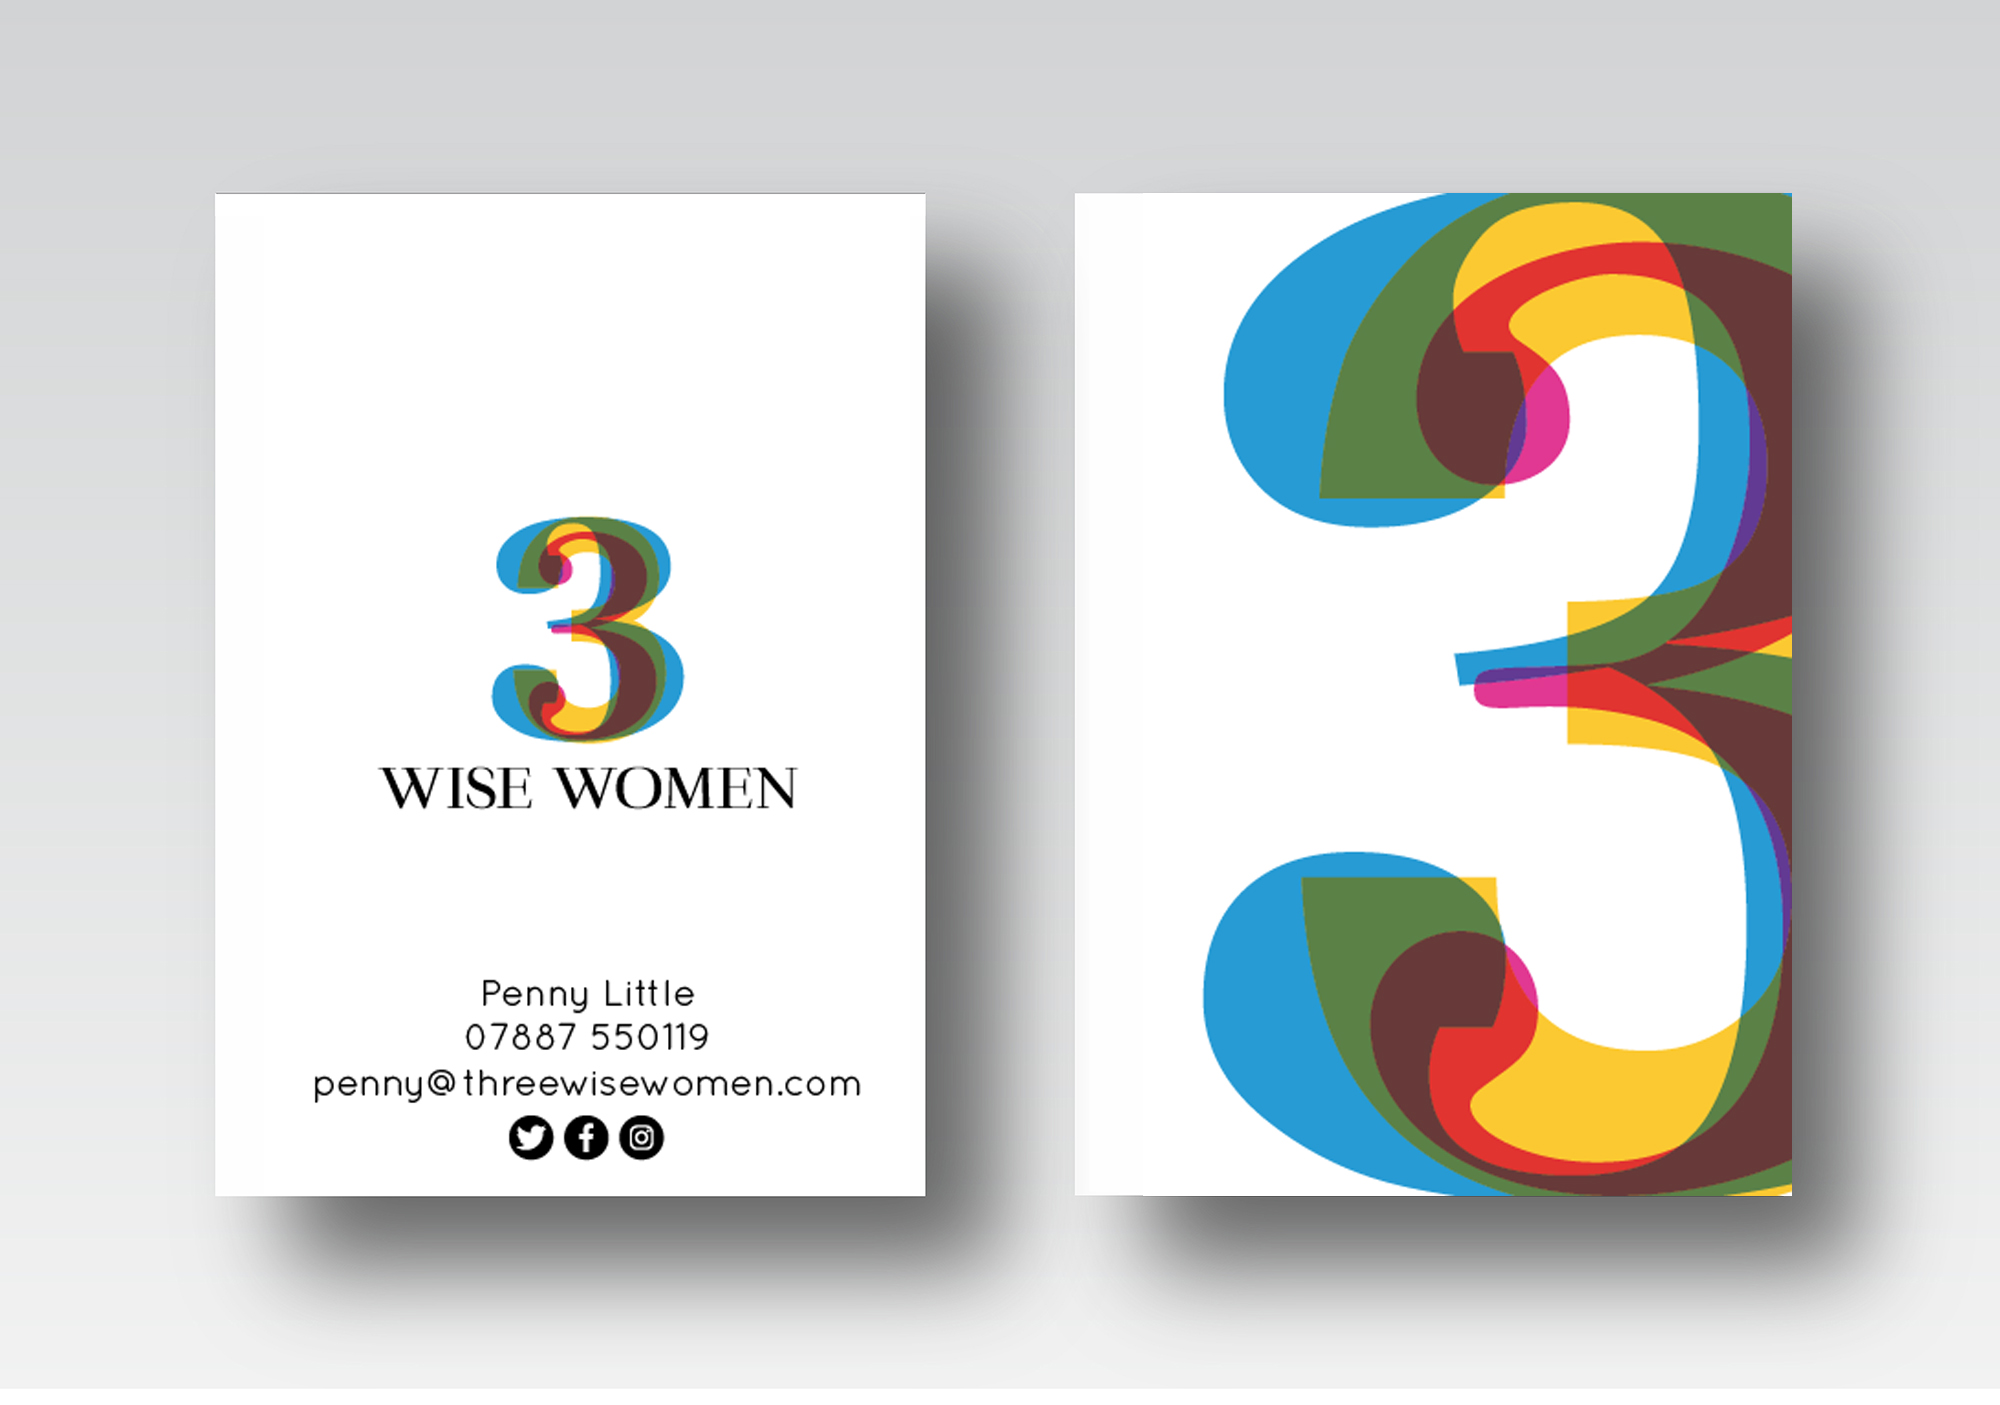 penny little business cards